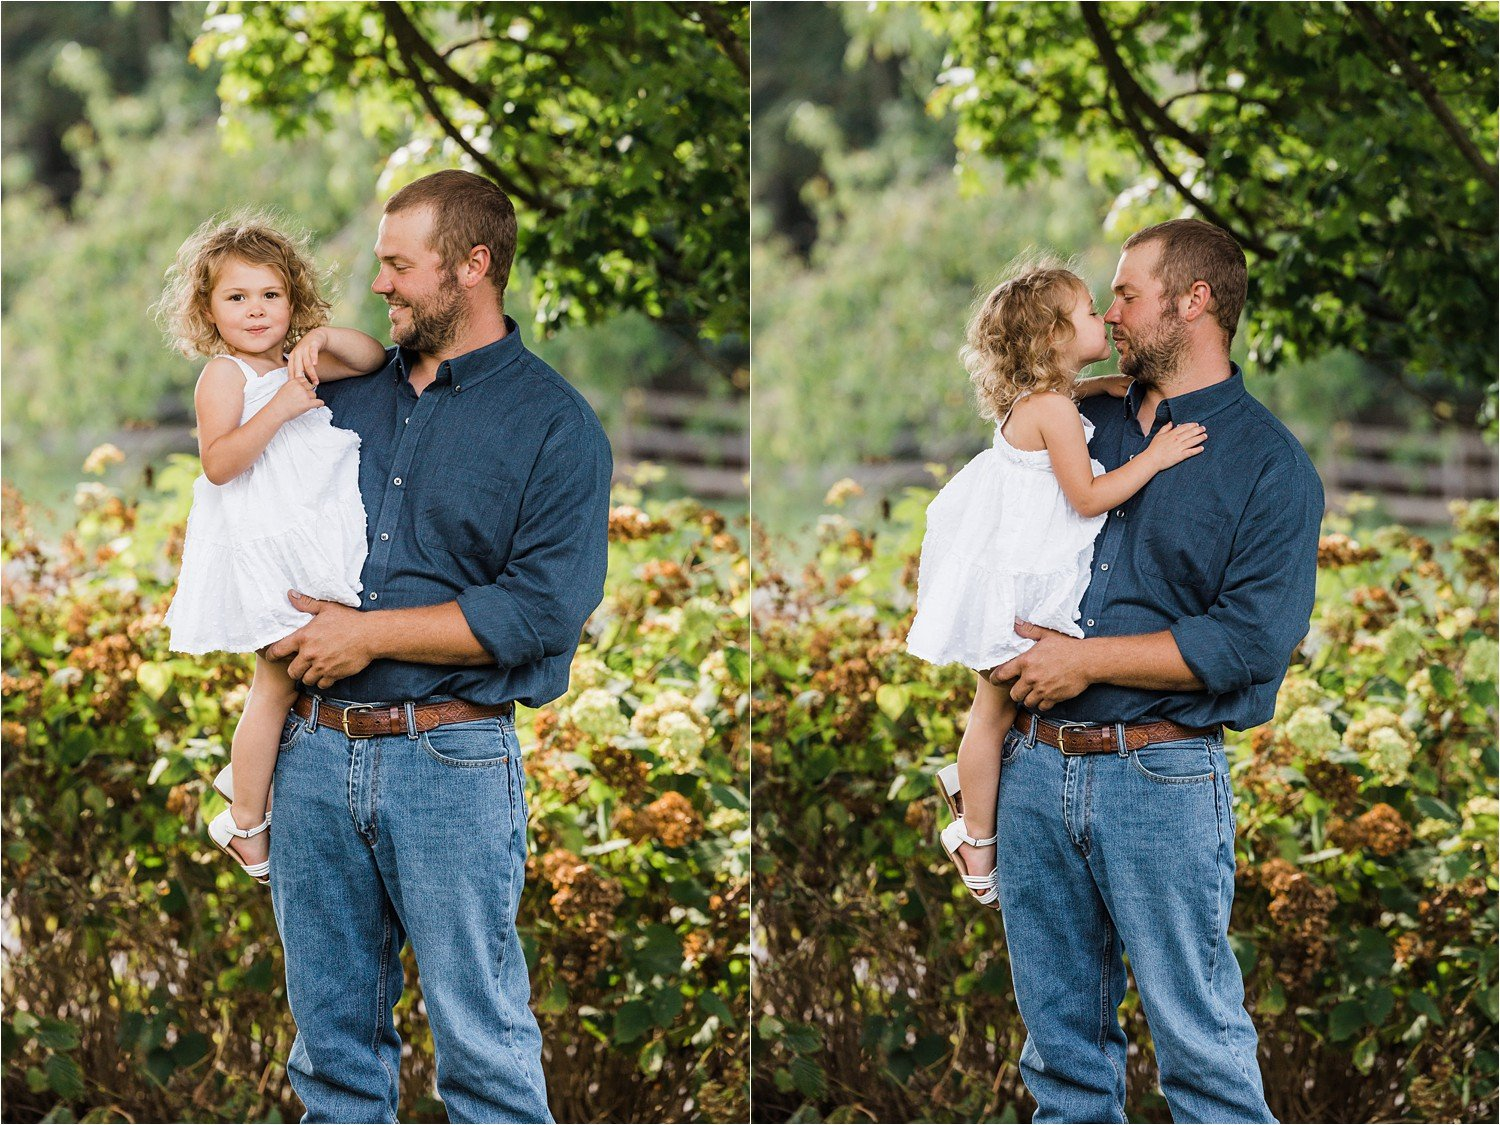 sweet father and daughter photos